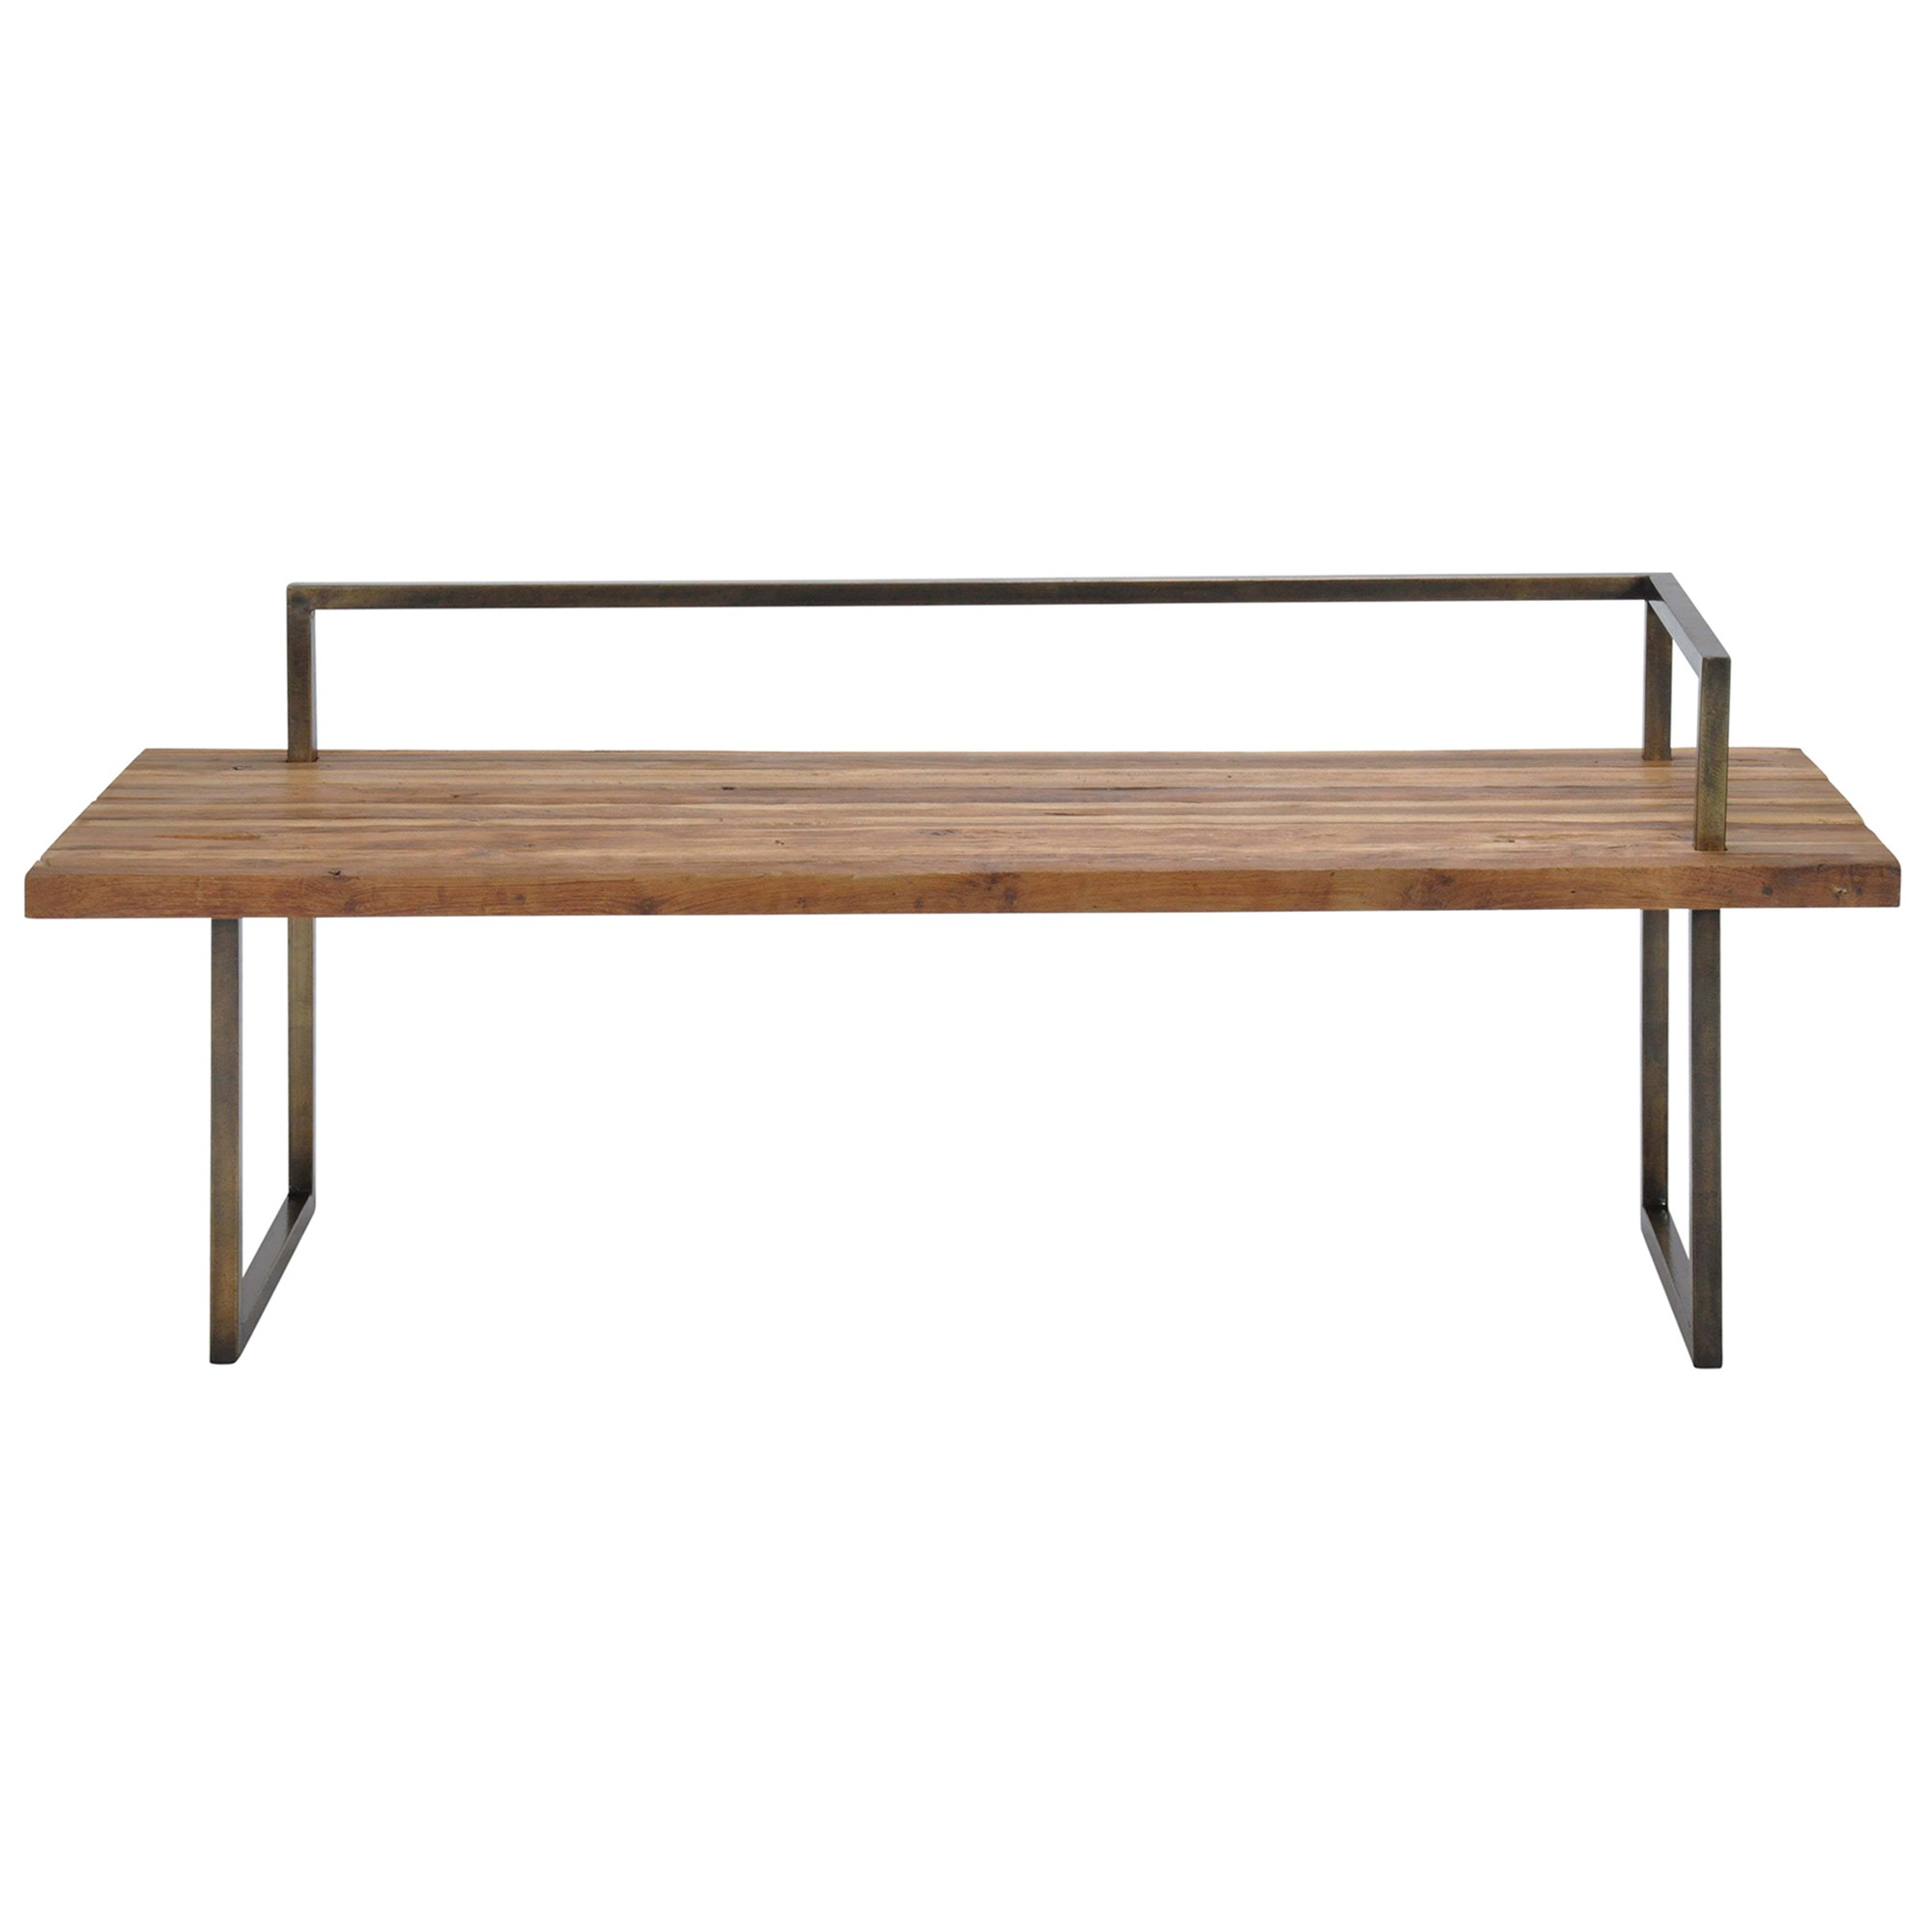 Tropica Santiago Commercial Grade Reclaimed Teak Timber & Metal Hall Bench, 160cm